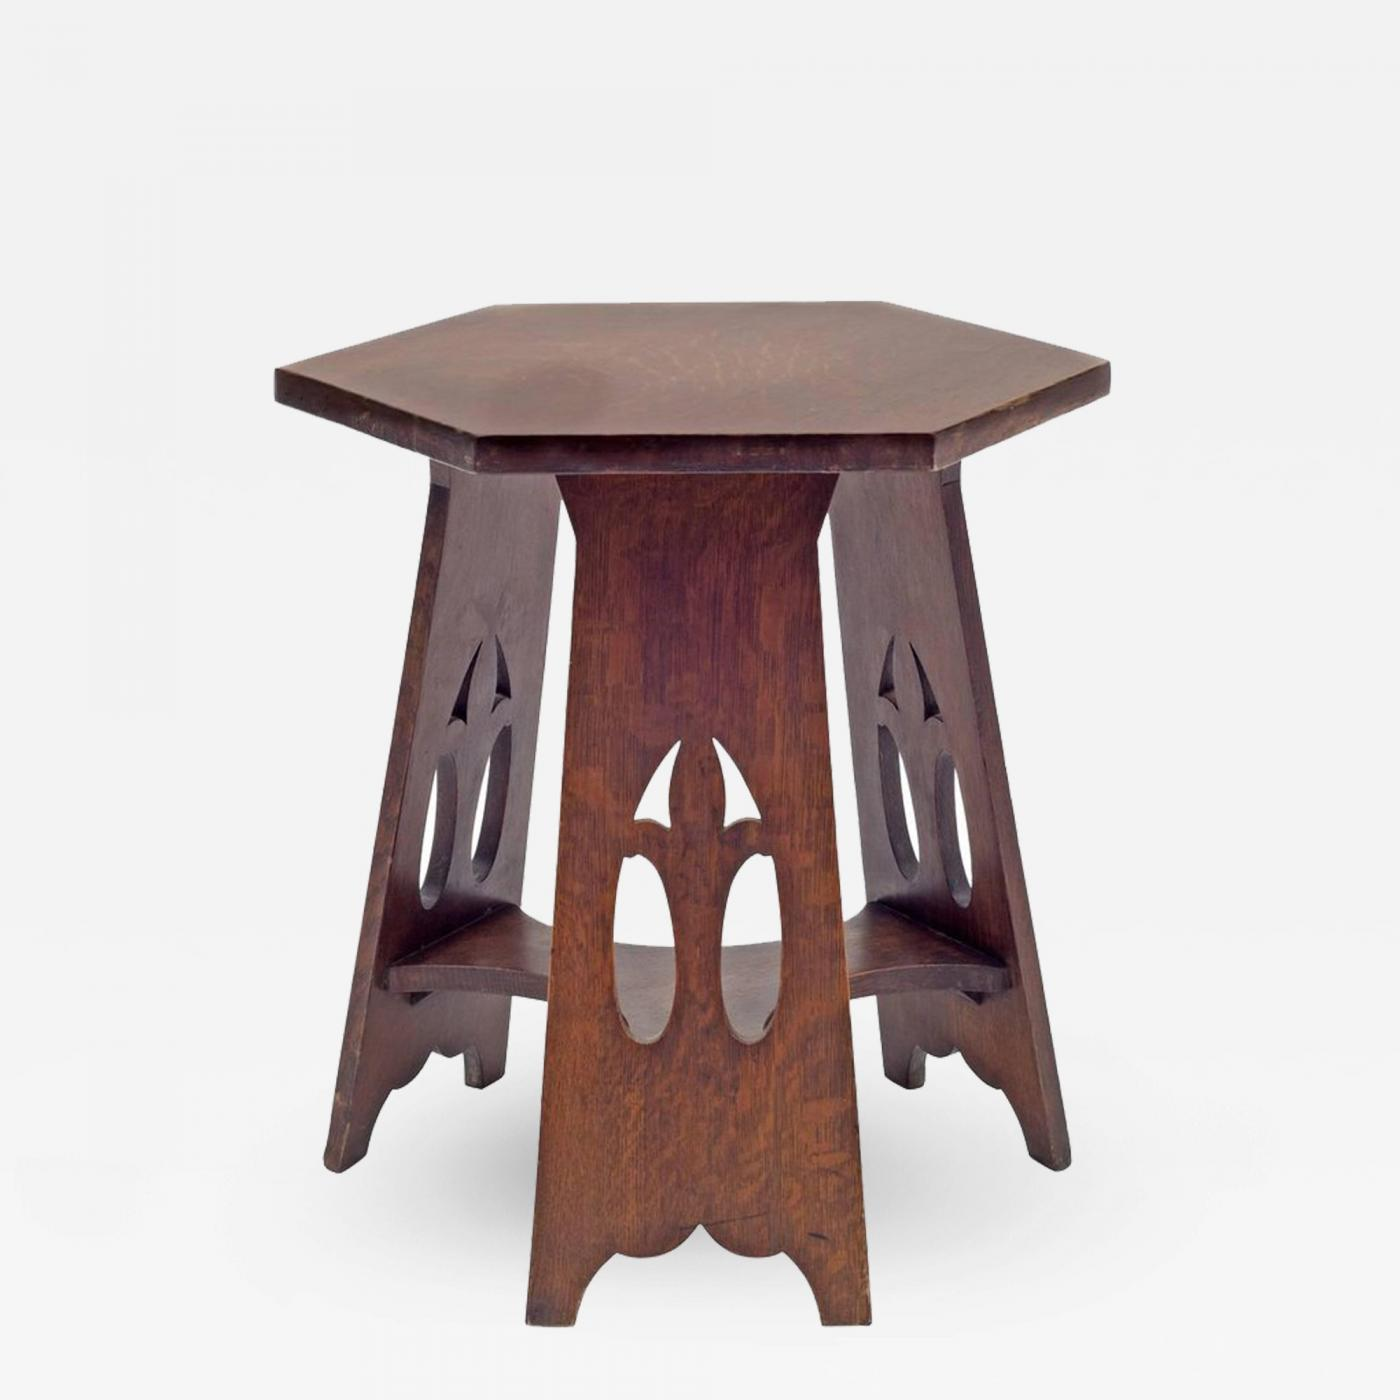 Beau Listings / Furniture / Tables / Side Tables